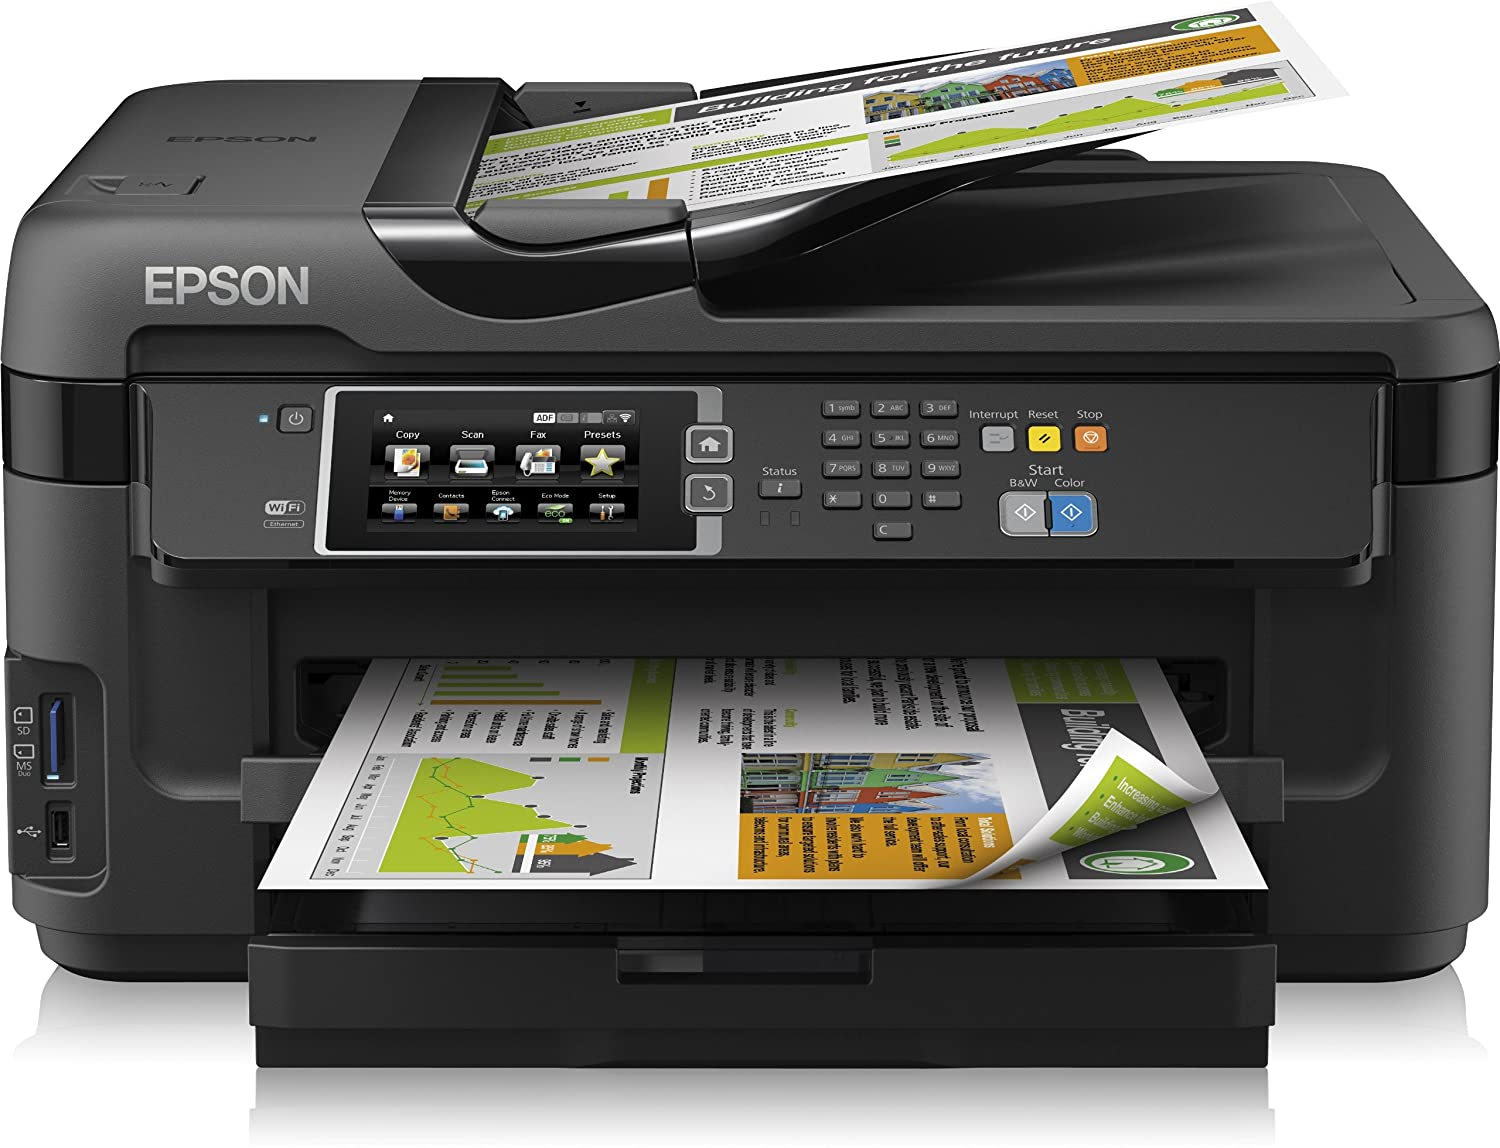 Amazon.com: Epson Workforce WF-7610DWF Imprimante Couleur ...